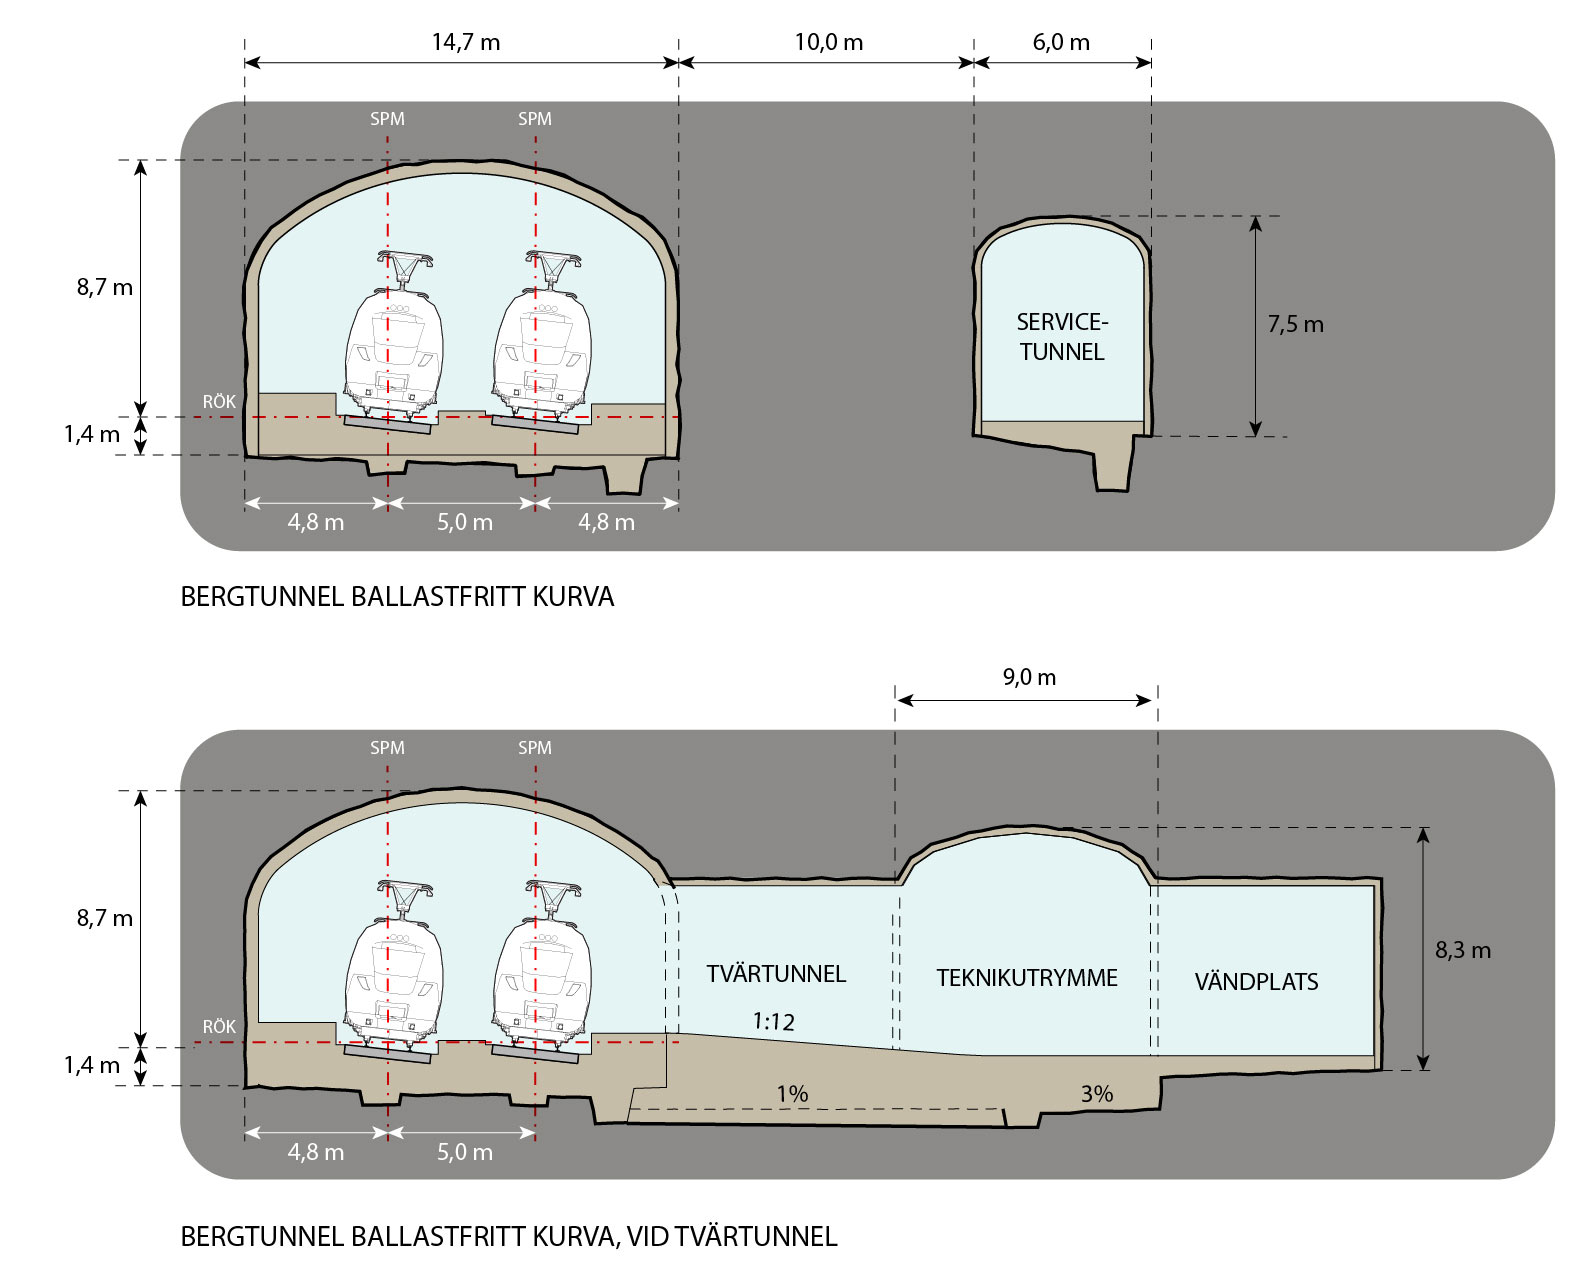 Proposed rock tunnels for the project